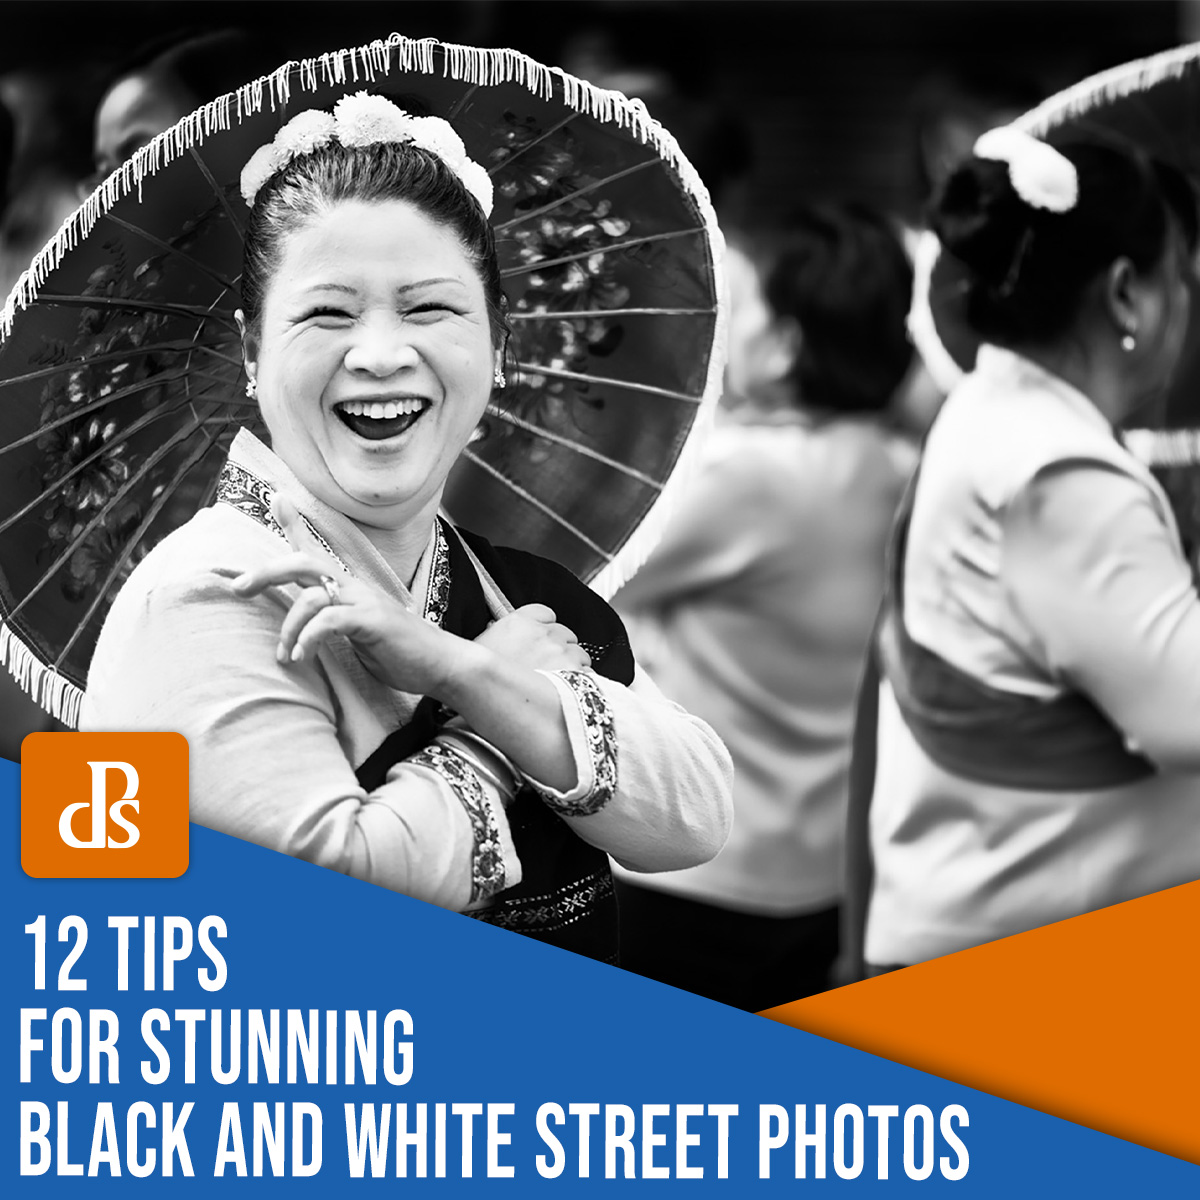 12 tips for stunning black and white street photography